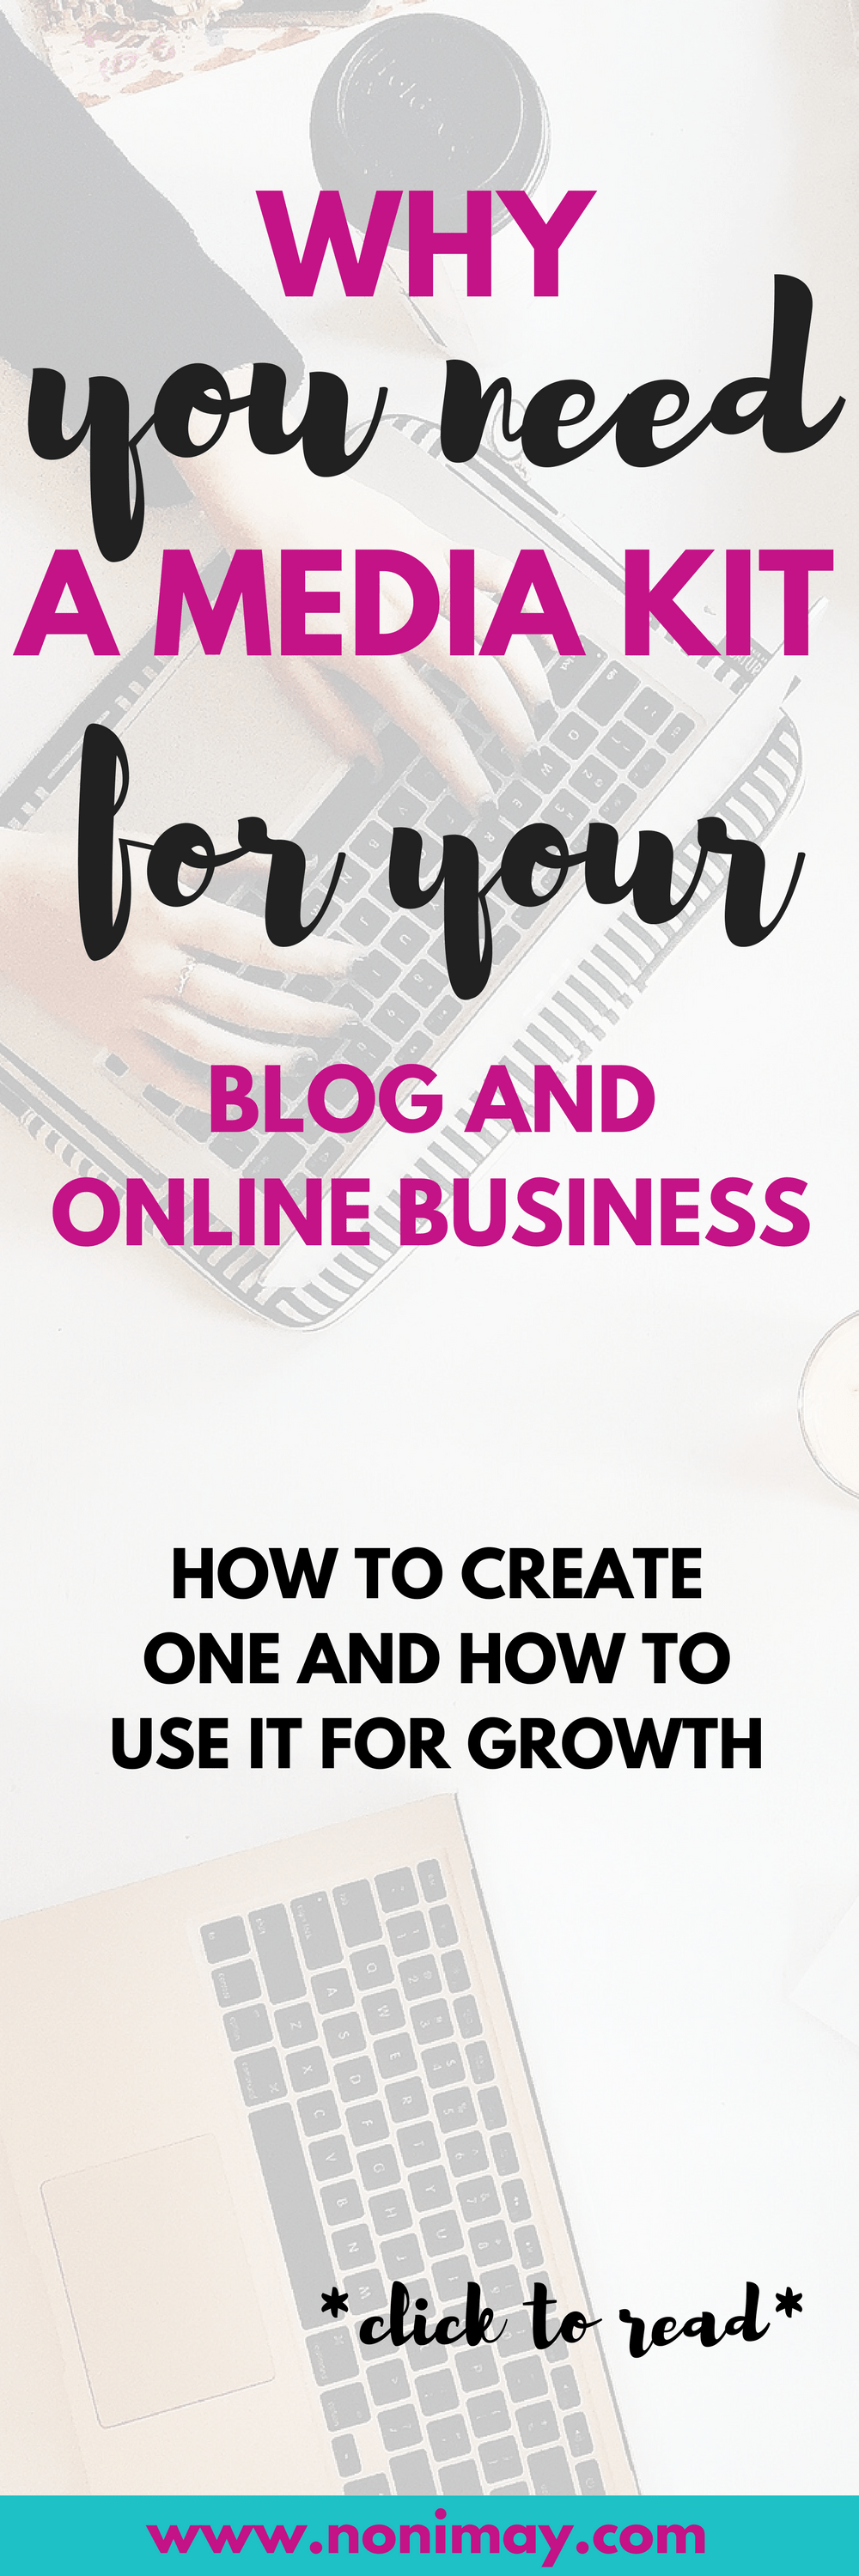 Why you need a media kit for your blog and online business